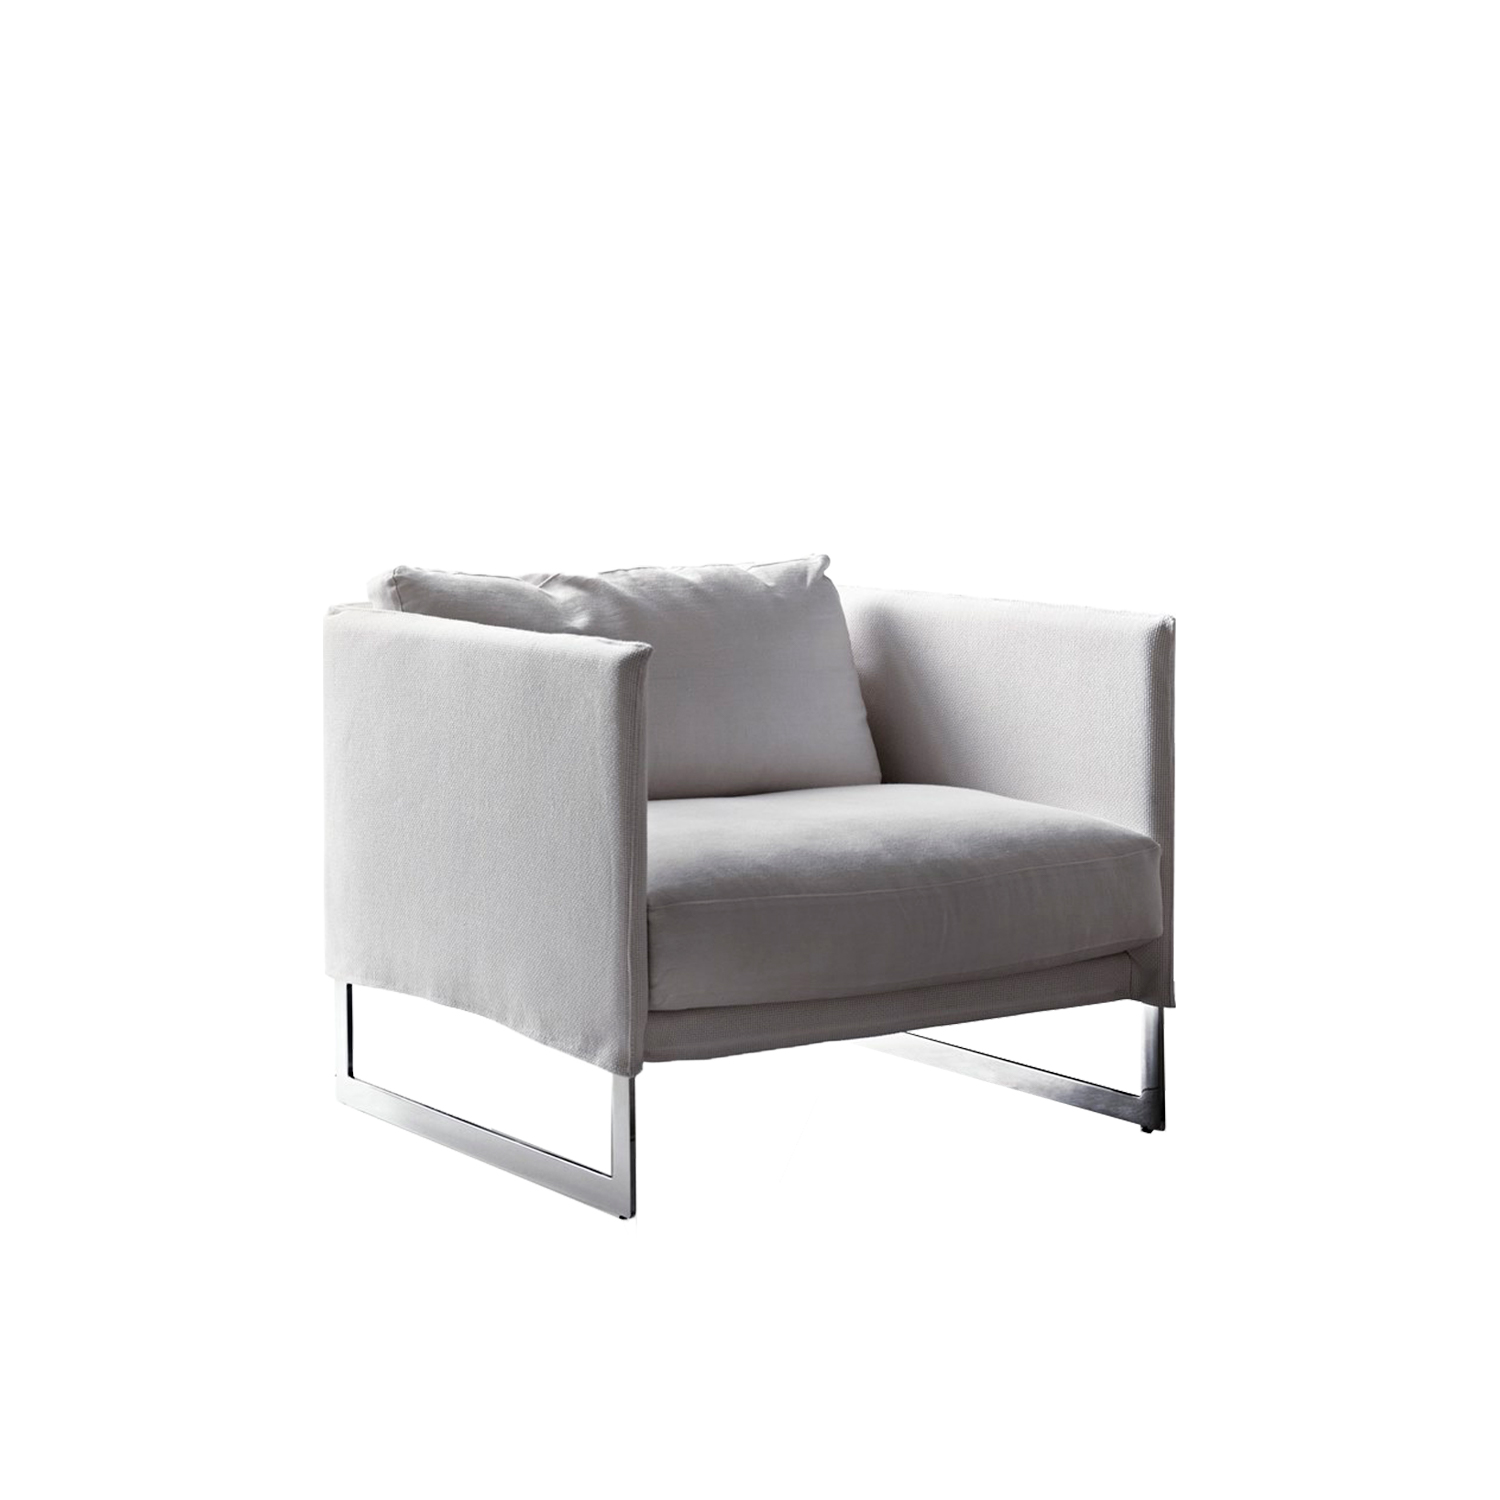 Livingston Lounge Armchair - The Livingston tub chair is the perfect companion to the Livingston sofa. With its balanced proportions, it is one of those objects whose beauty never fades. Its steel frame perfectly matches both leather and fabric upholstery. Fully removable covers.  Additional removable cover is available, please enquire for prices.  Materials Structure in black painted metal; the seat is sprung with elastic straps reinforced with polypropylene; the metal armrests are padded with polyurethane foam (75IP and 30P) and covered in white velveteen backed with polyurethane foam; the black is in multi-layered wood, covered in velfodera backed with polyester 300gr/sqm. Feet in shaped metal, glossy chrome or black nickel finish. The backrest and armrest cushions are padded with washed and sterilized goose down, divided into sections mixed with polyester fiber, everything is covered in white 100% cotton fabric. Seat cushion is made with polyurethane foam core 40IM and memory foam, covered with velfodera on a polyester fiber 280 gr/sqm. | Matter of Stuff